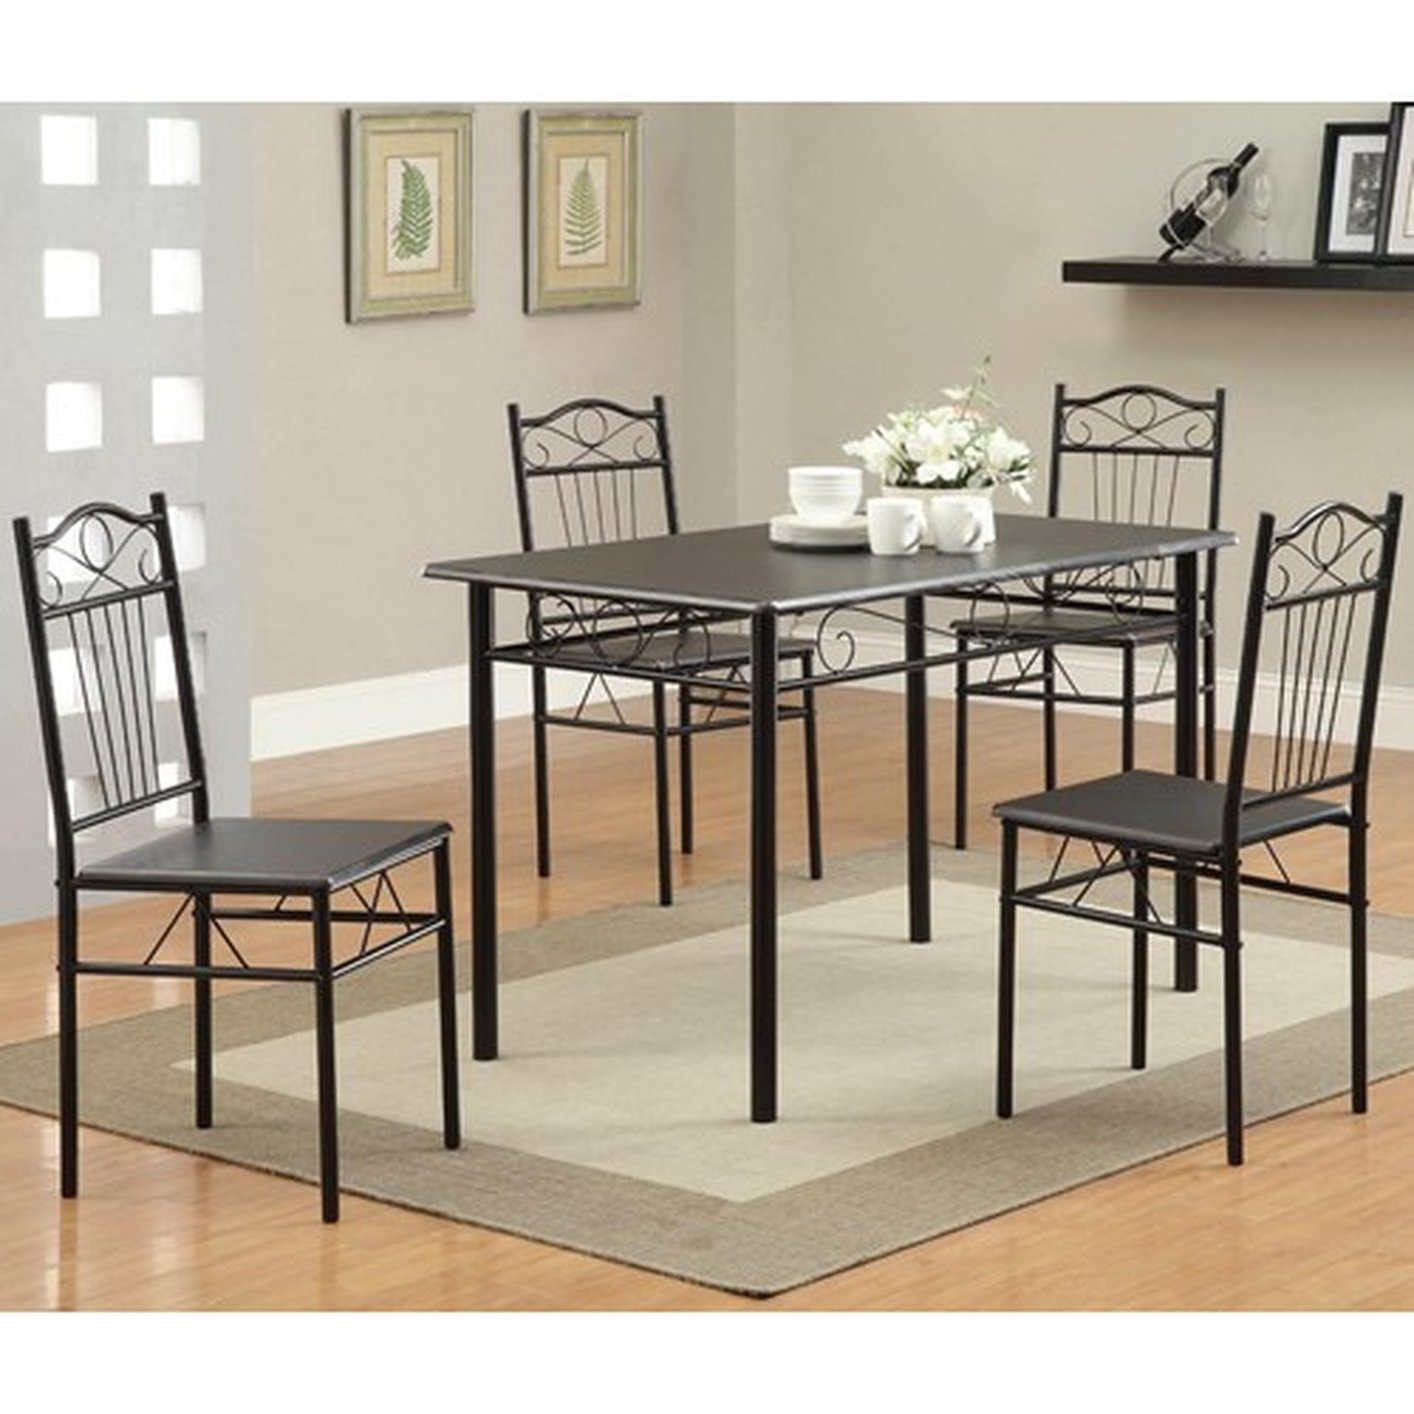 Iron Table And Chairs Set Coaster 120573 Black Metal Dining Table And Chair Set Steal A